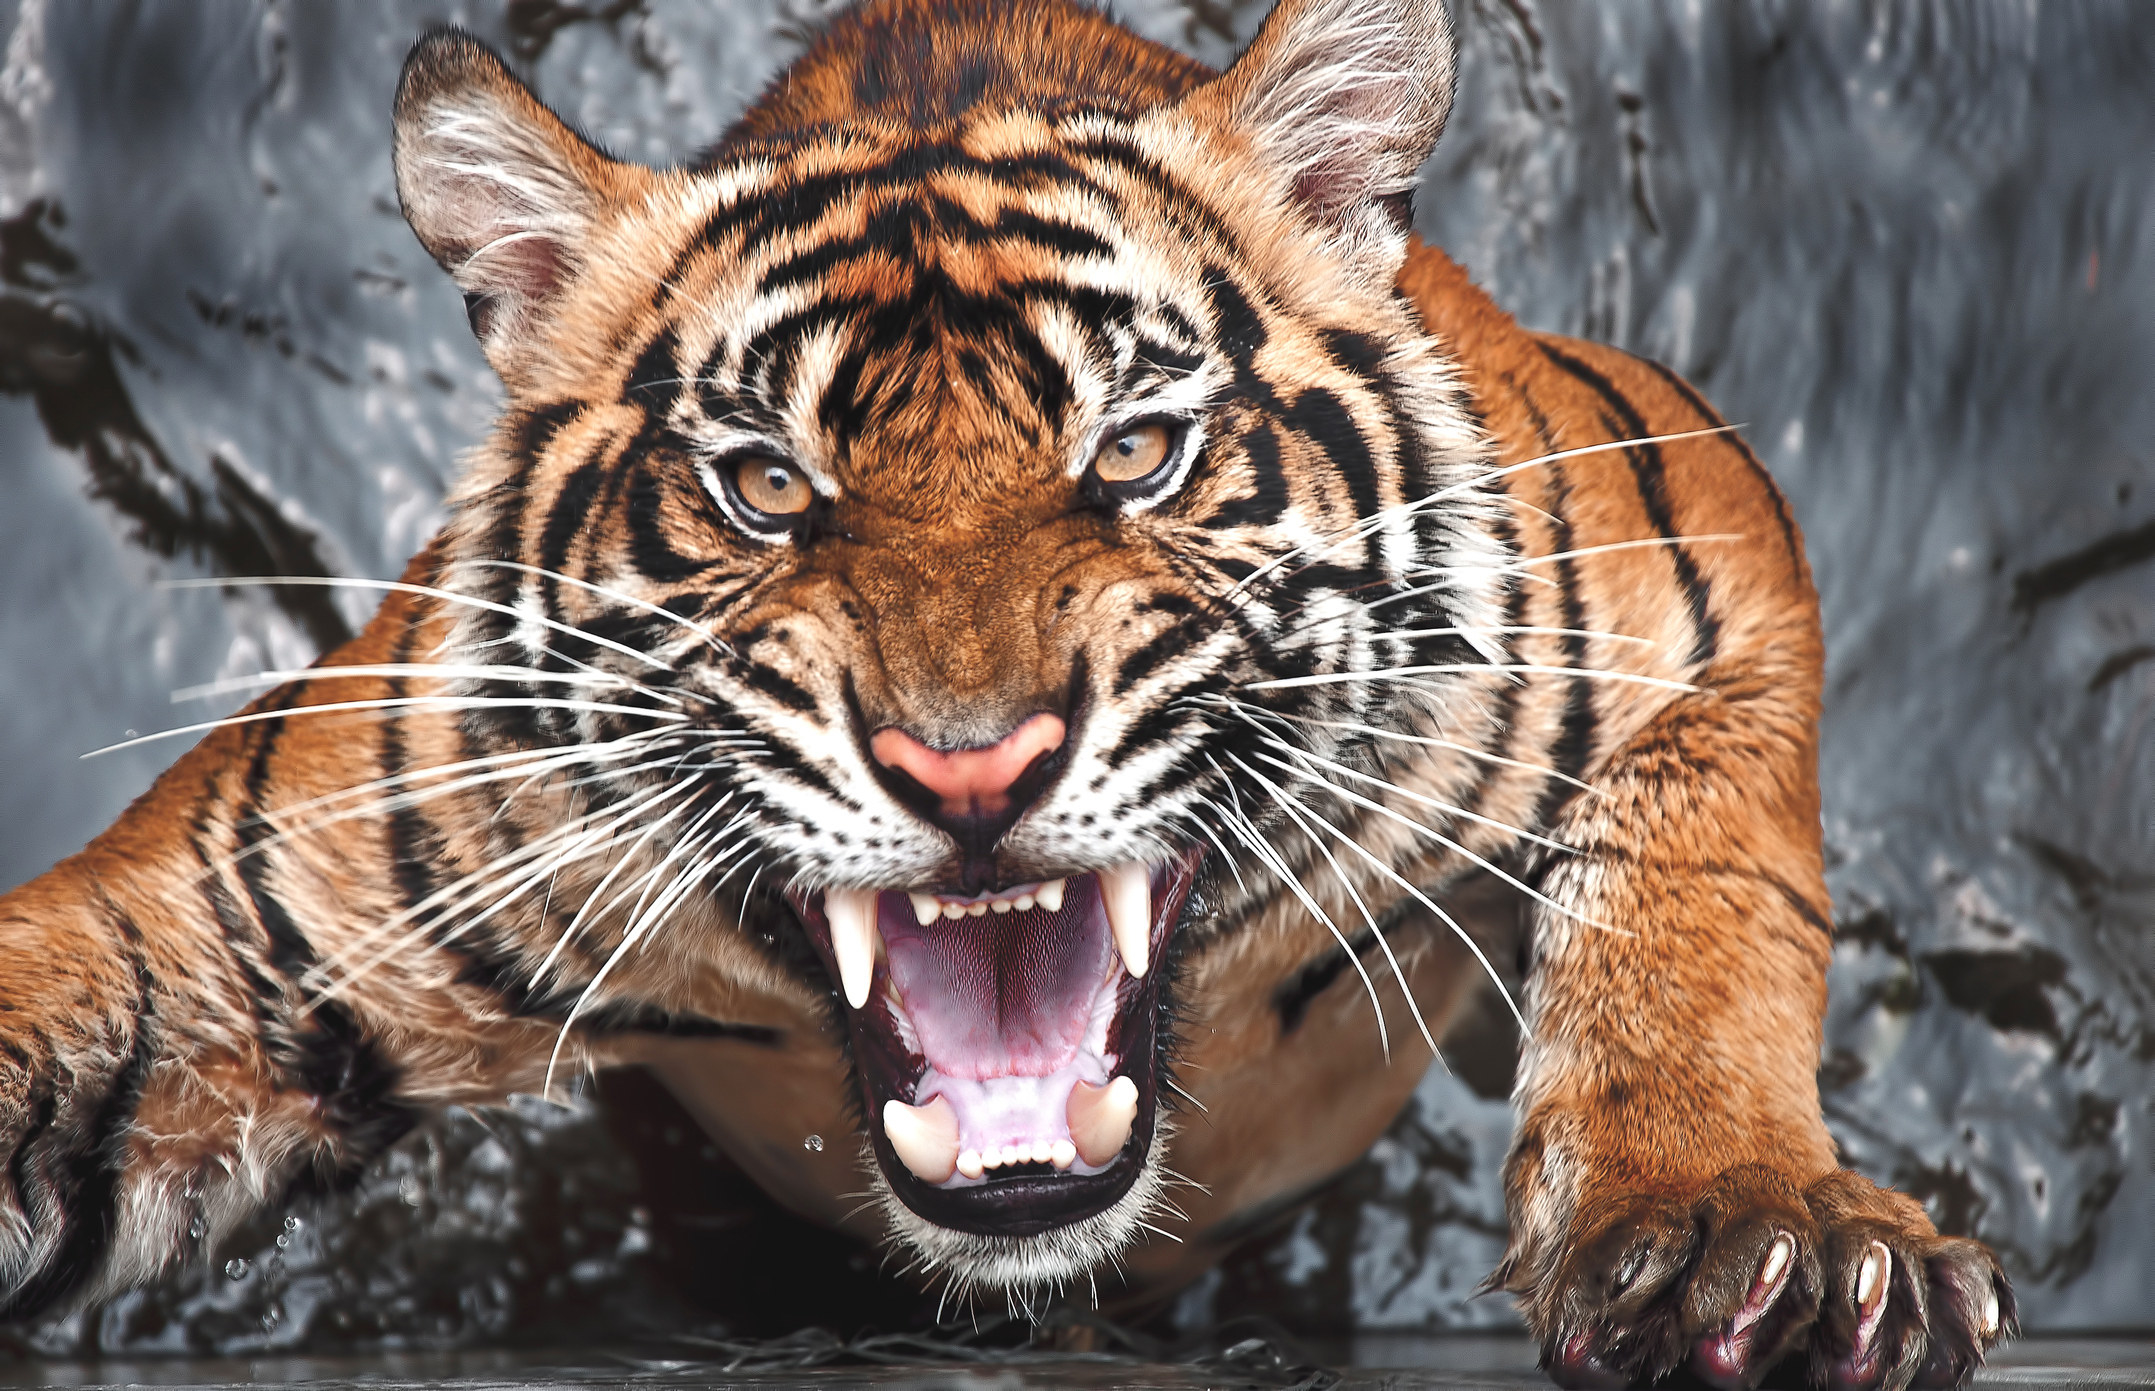 A tiger baring its teeth menacingly into the camera and climbing out of a pool of water